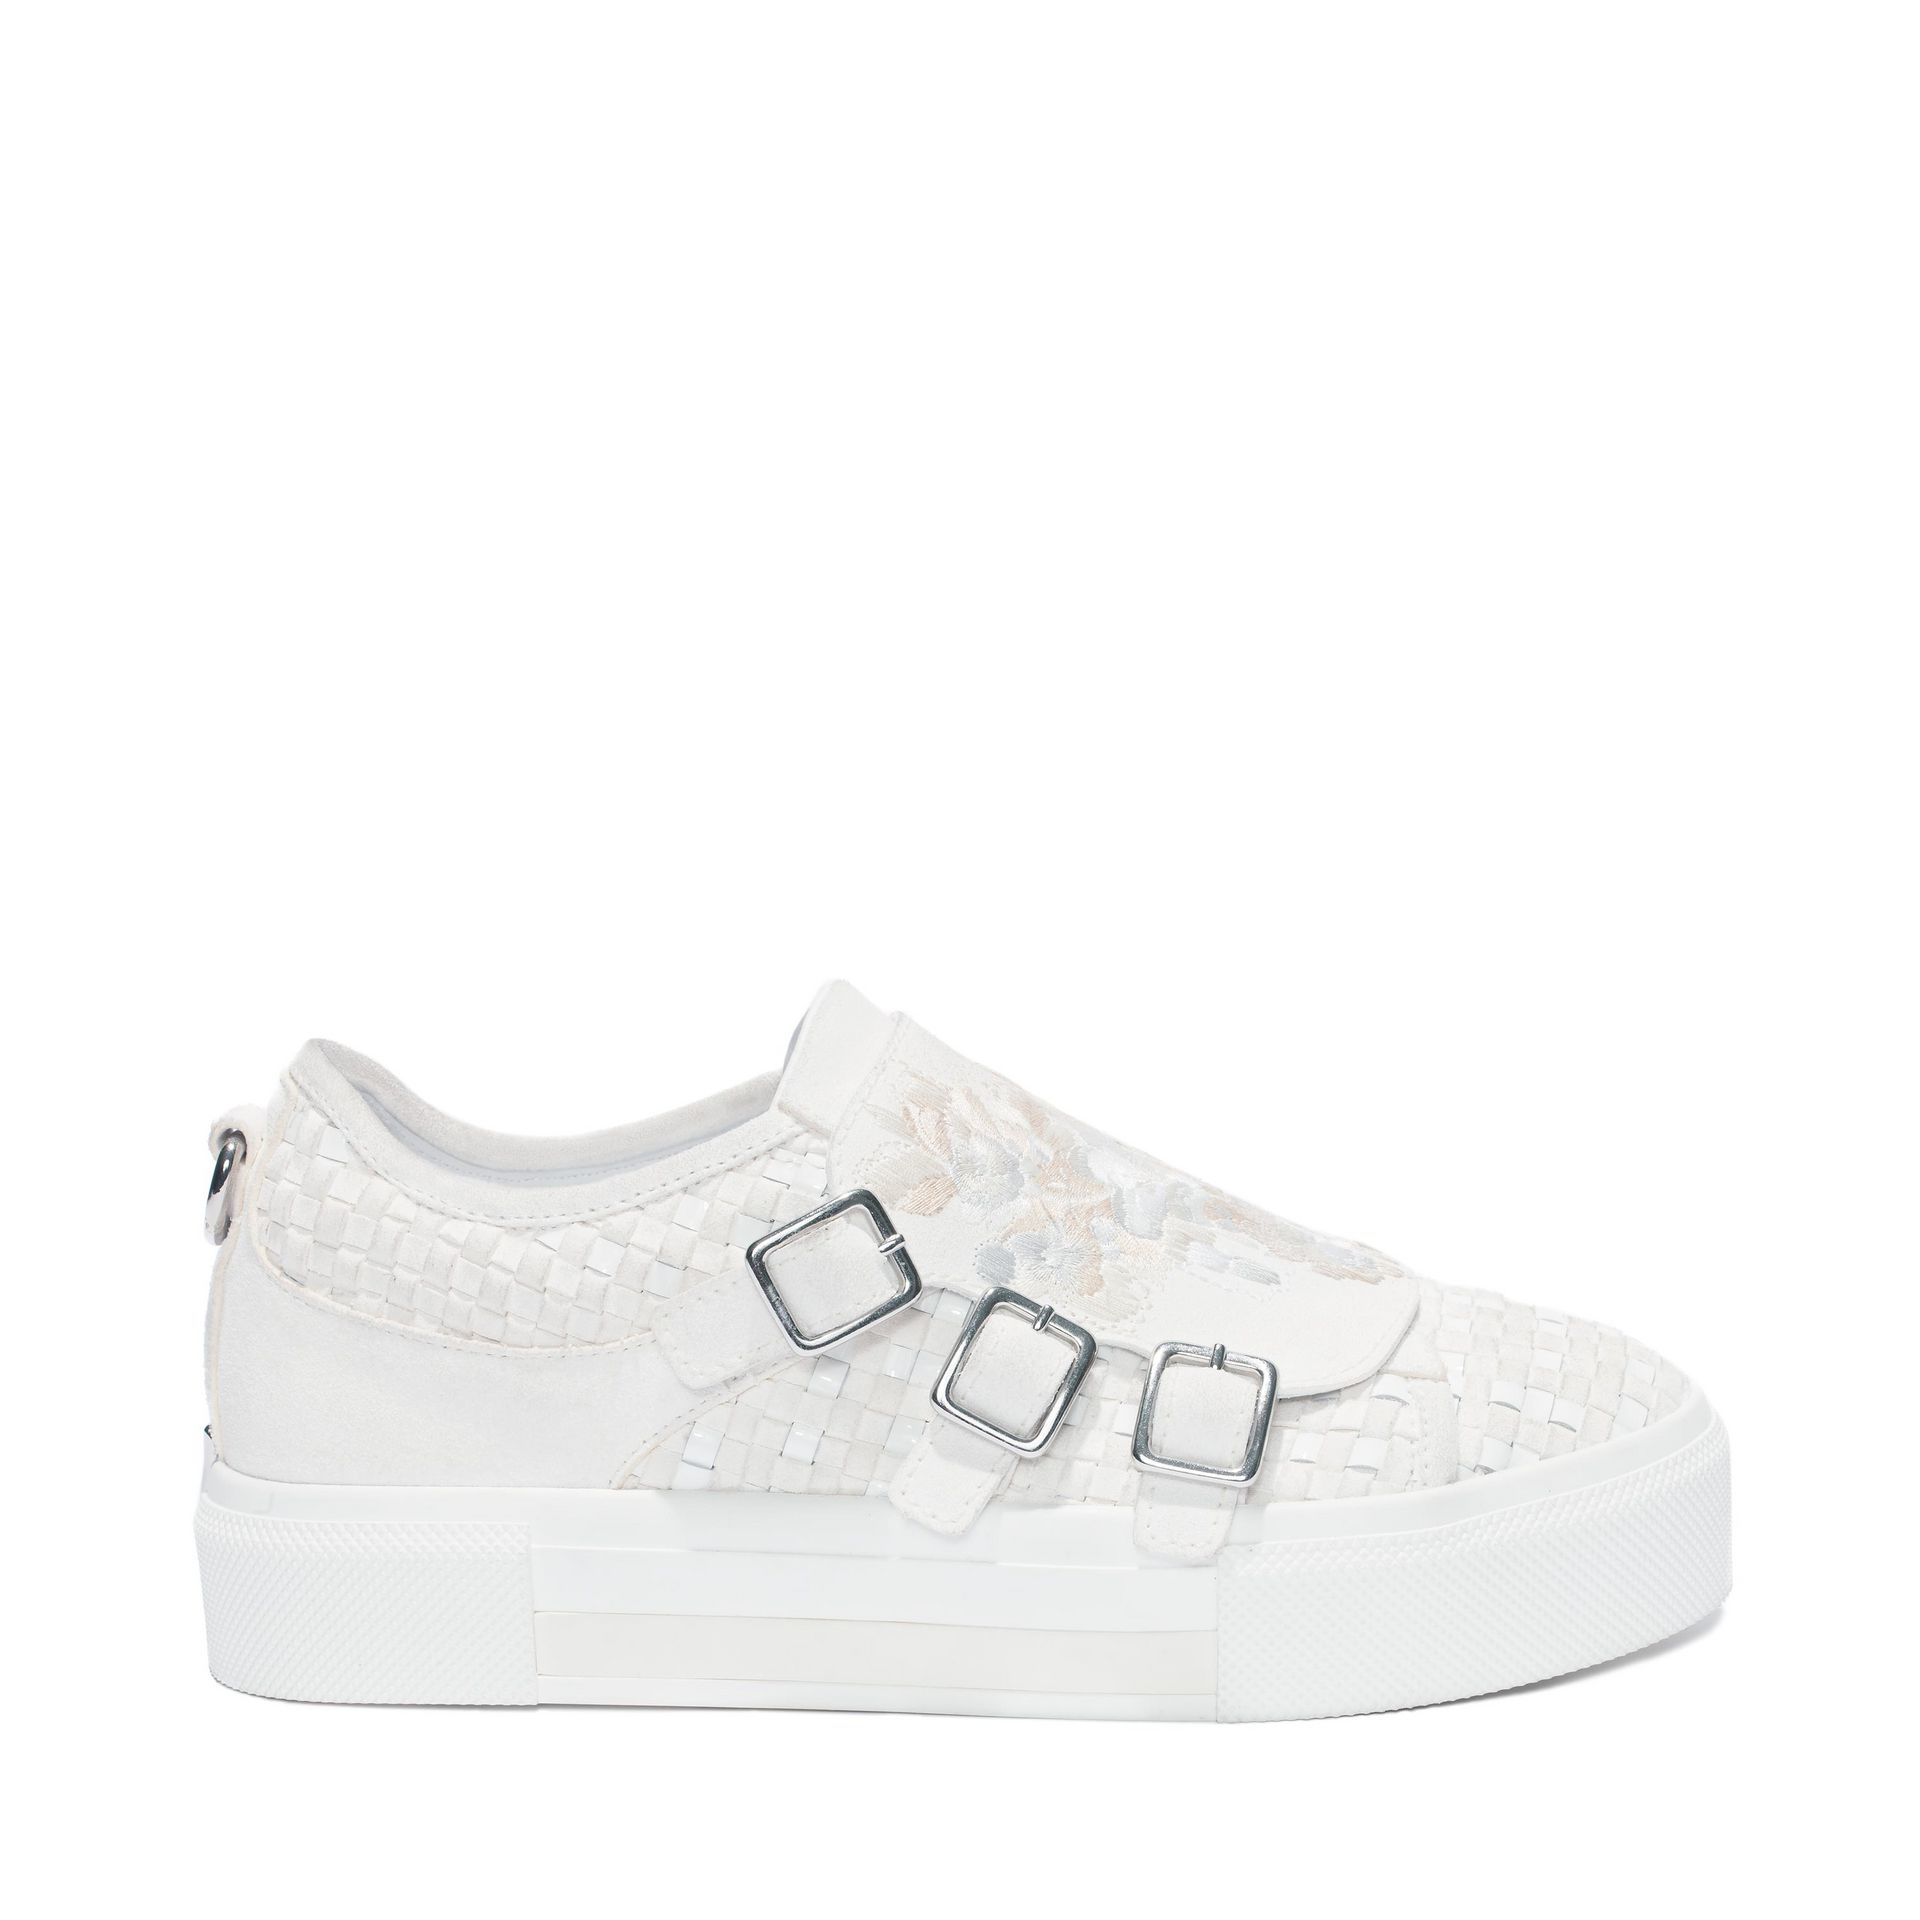 alexander mcqueen 3 buckle sneaker in white lyst. Black Bedroom Furniture Sets. Home Design Ideas